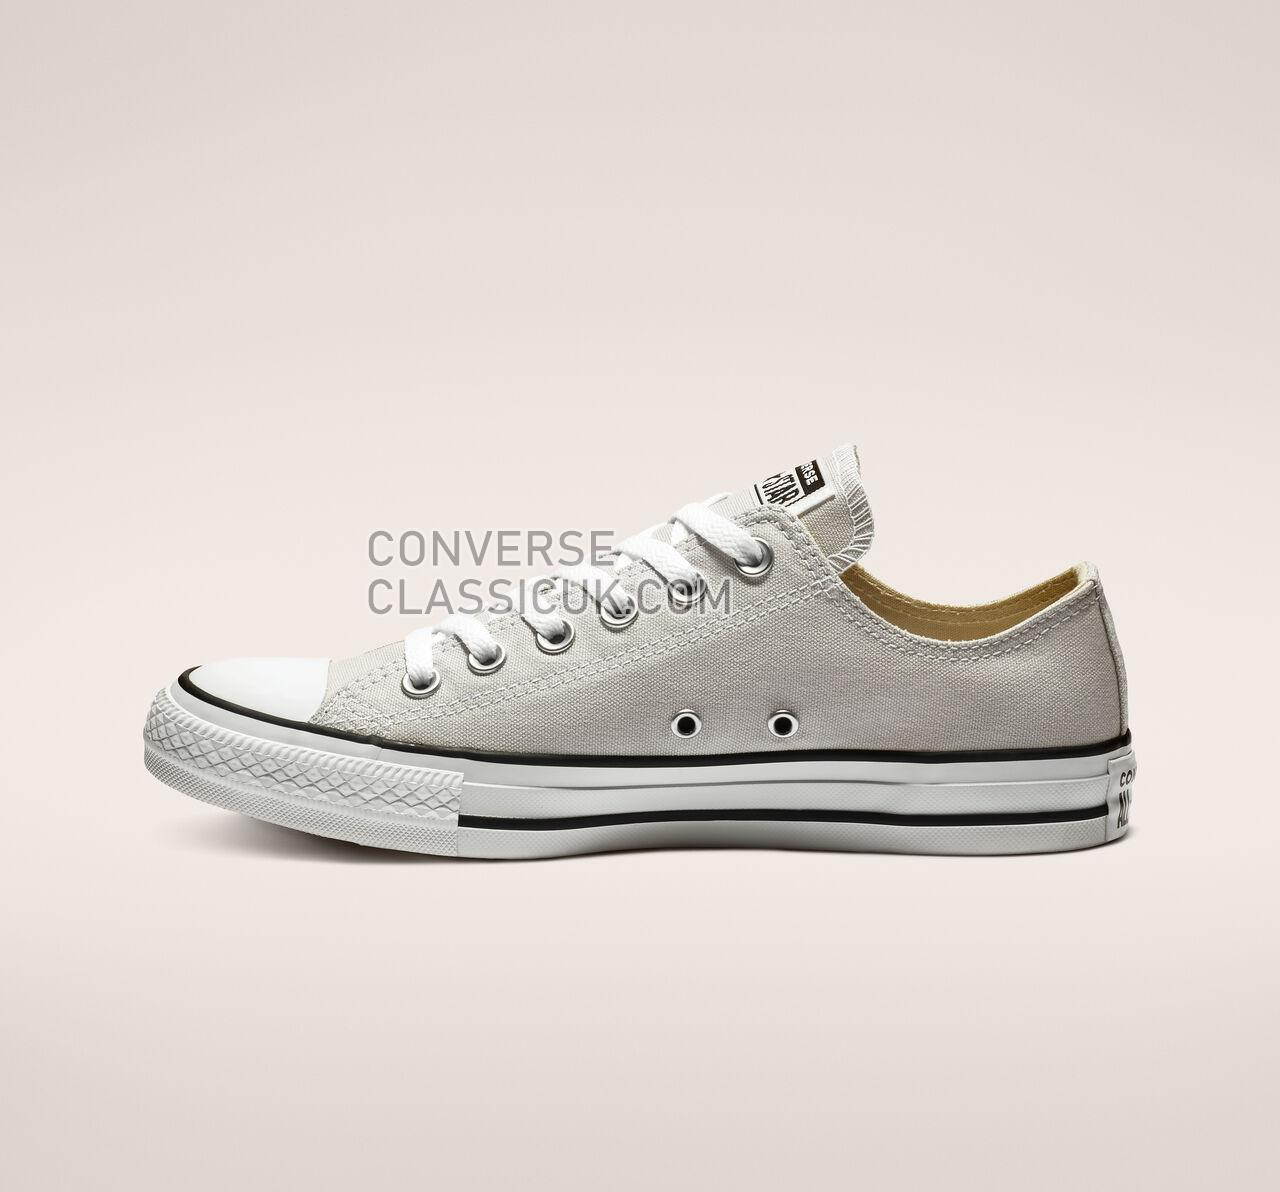 Converse Chuck Taylor All Star Seasonal Color Low Top Mens Womens Unisex 161423F Mouse Shoes